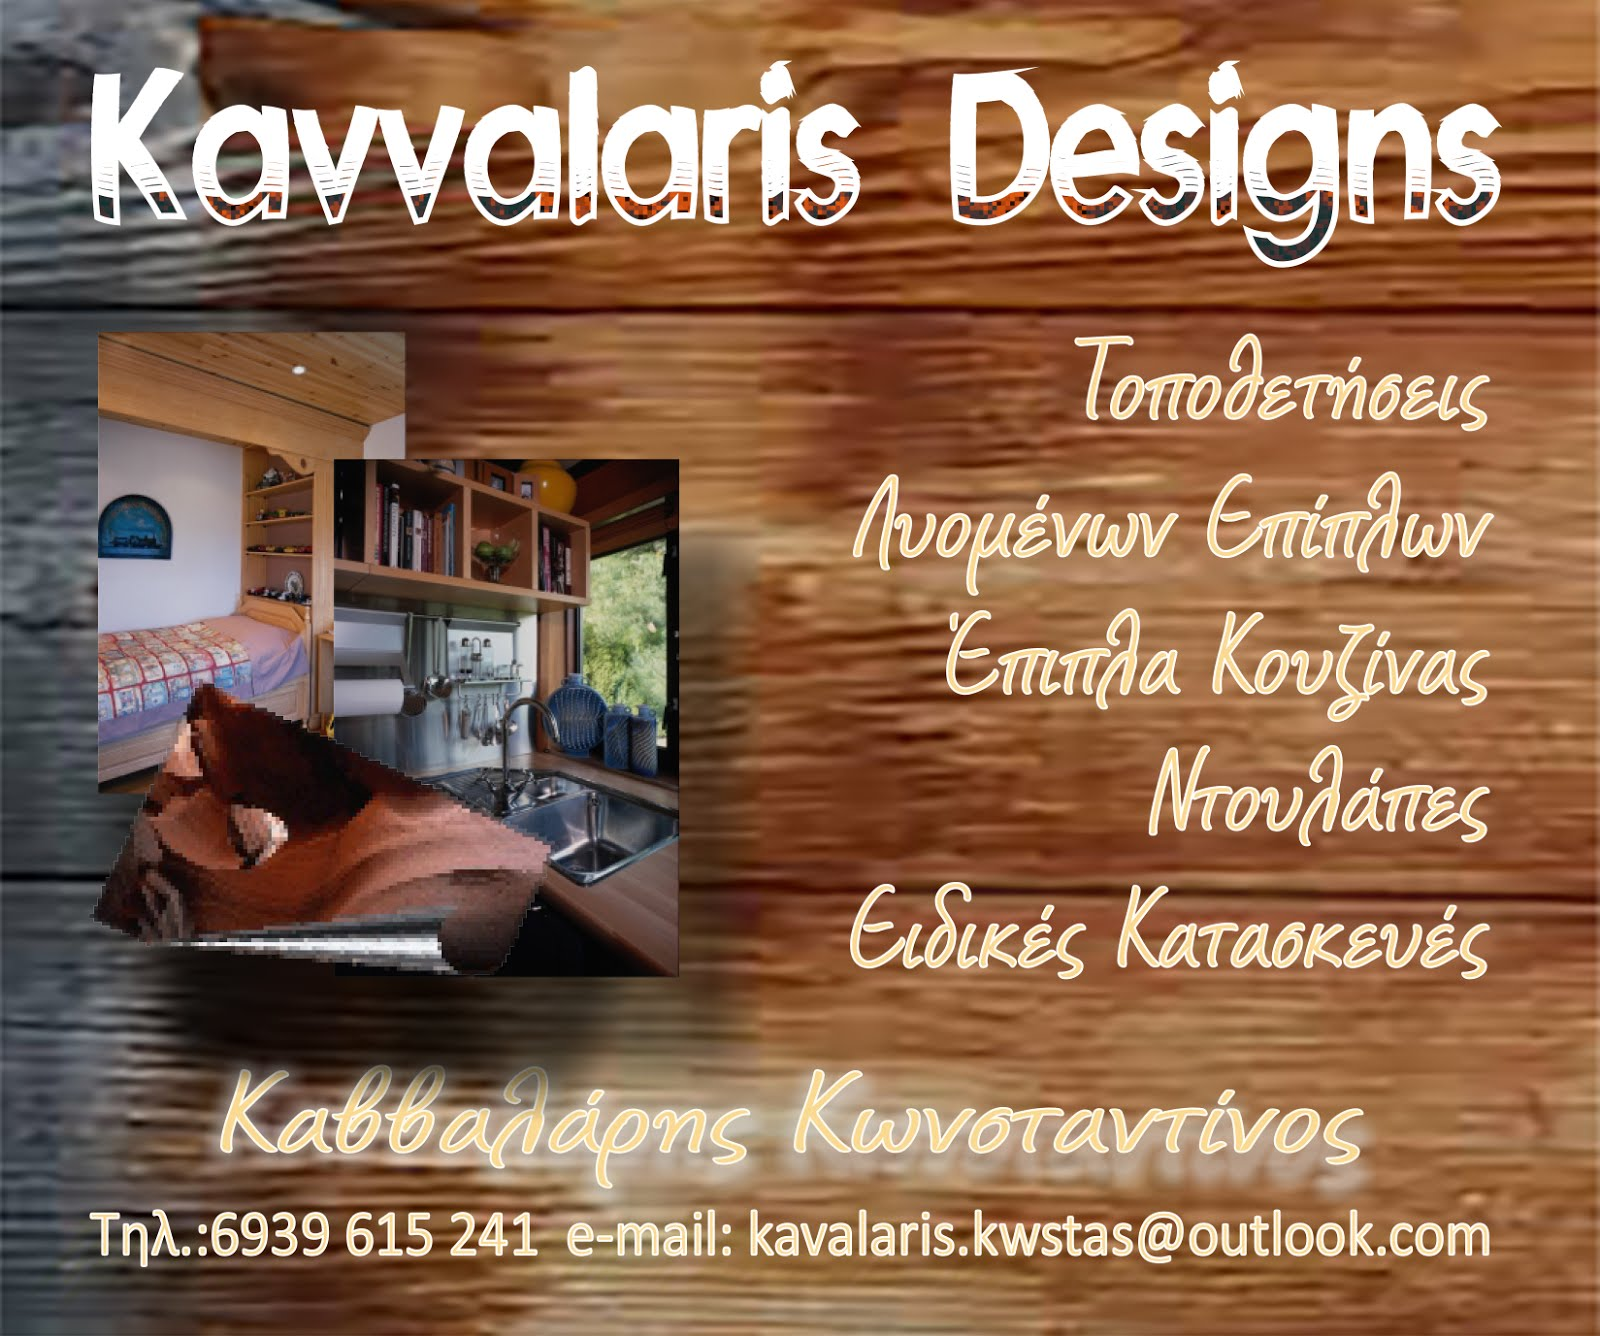 Kavvalaris Designs